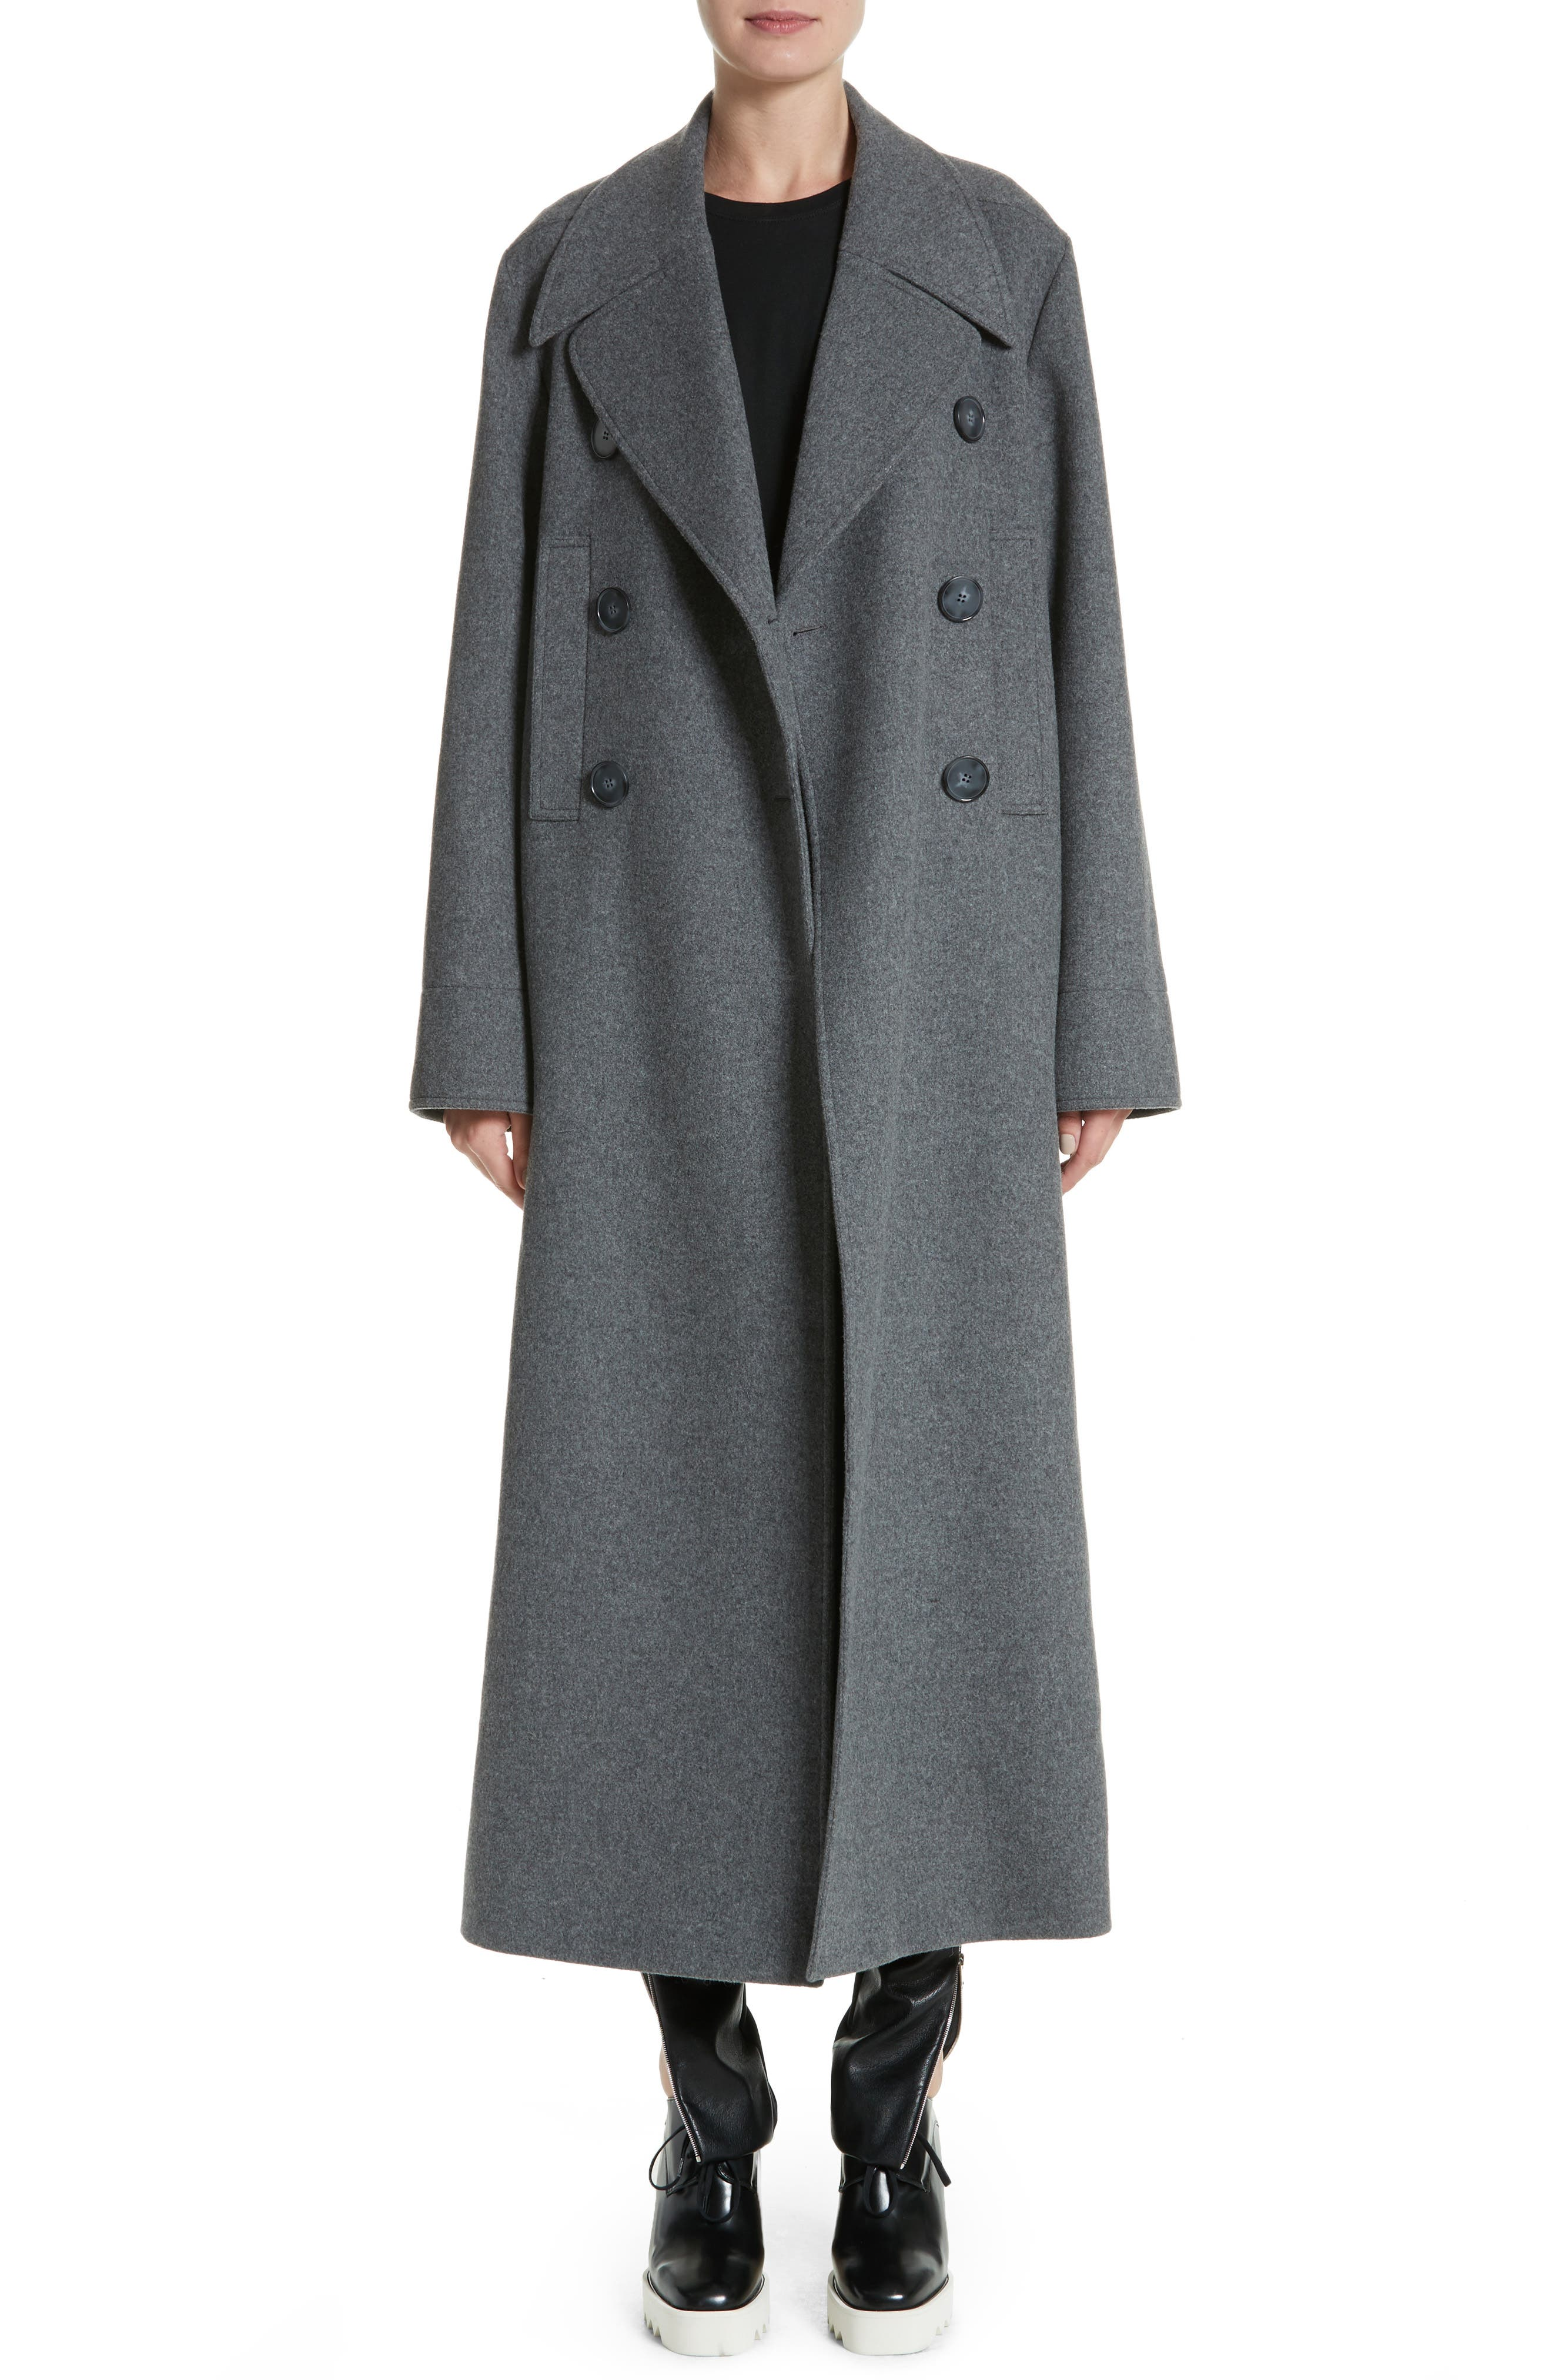 Edwina Long Double Breasted Wool Blend Coat,                         Main,                         color, 076